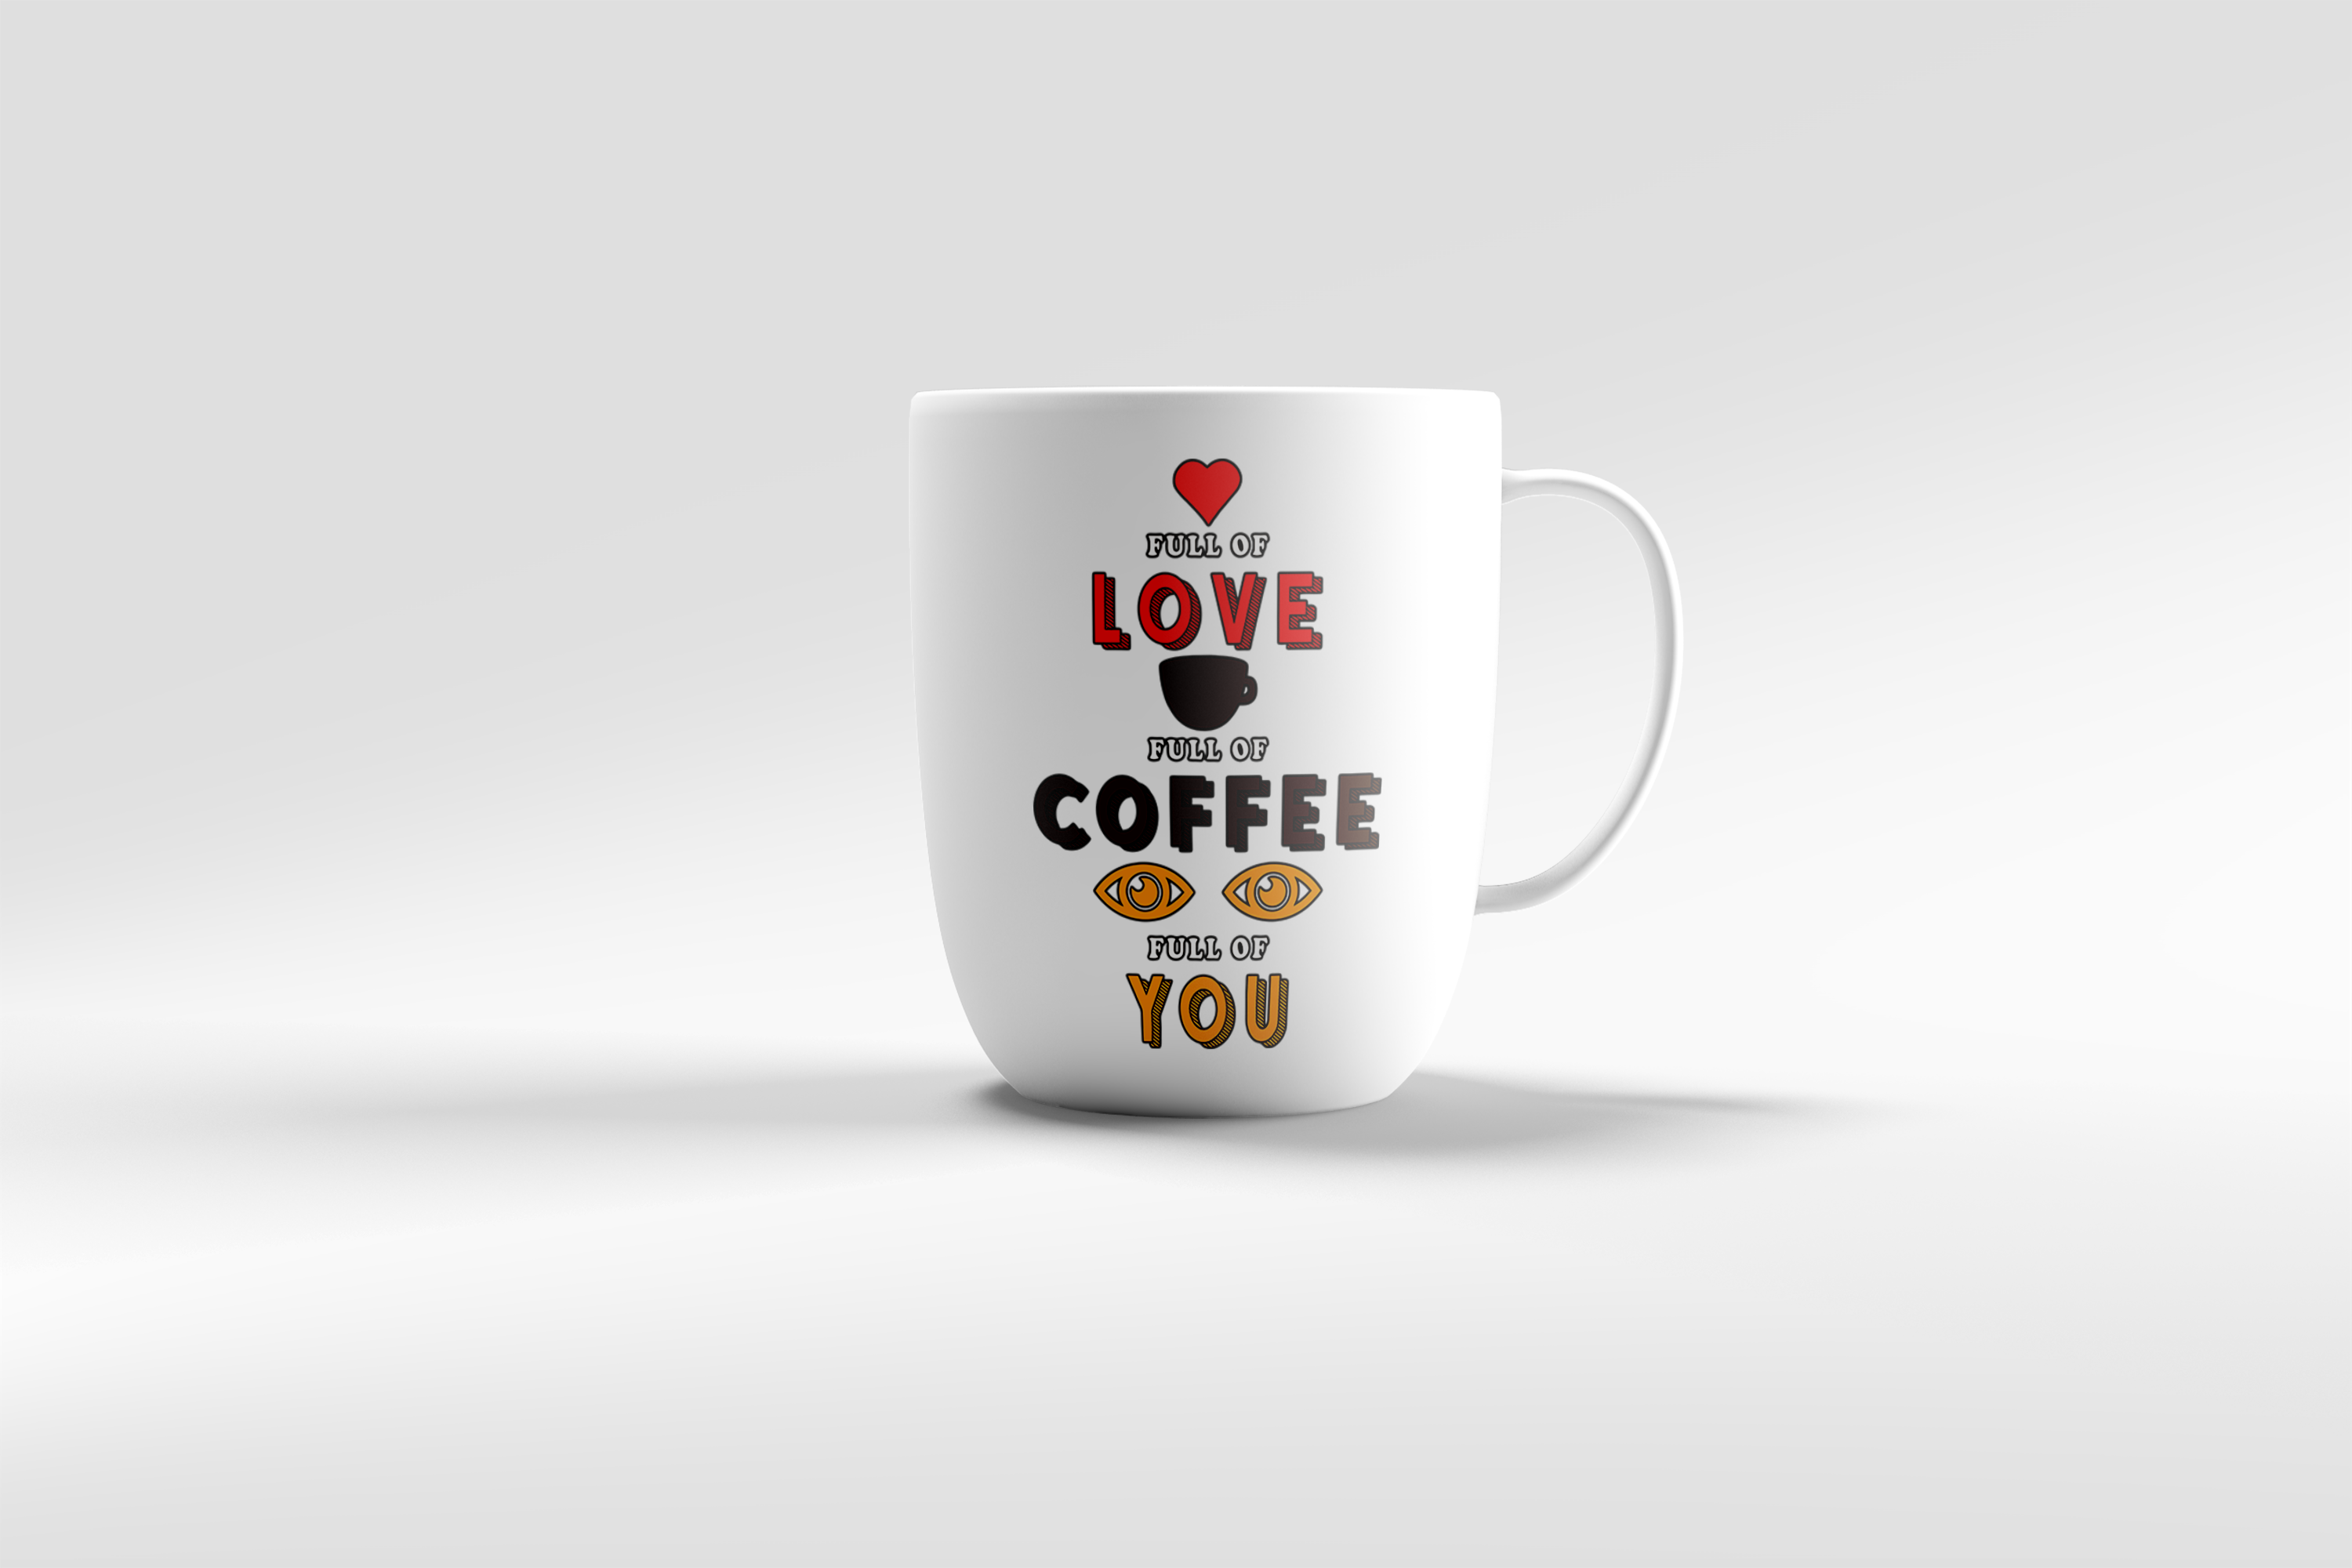 Love Coffee You example image 3